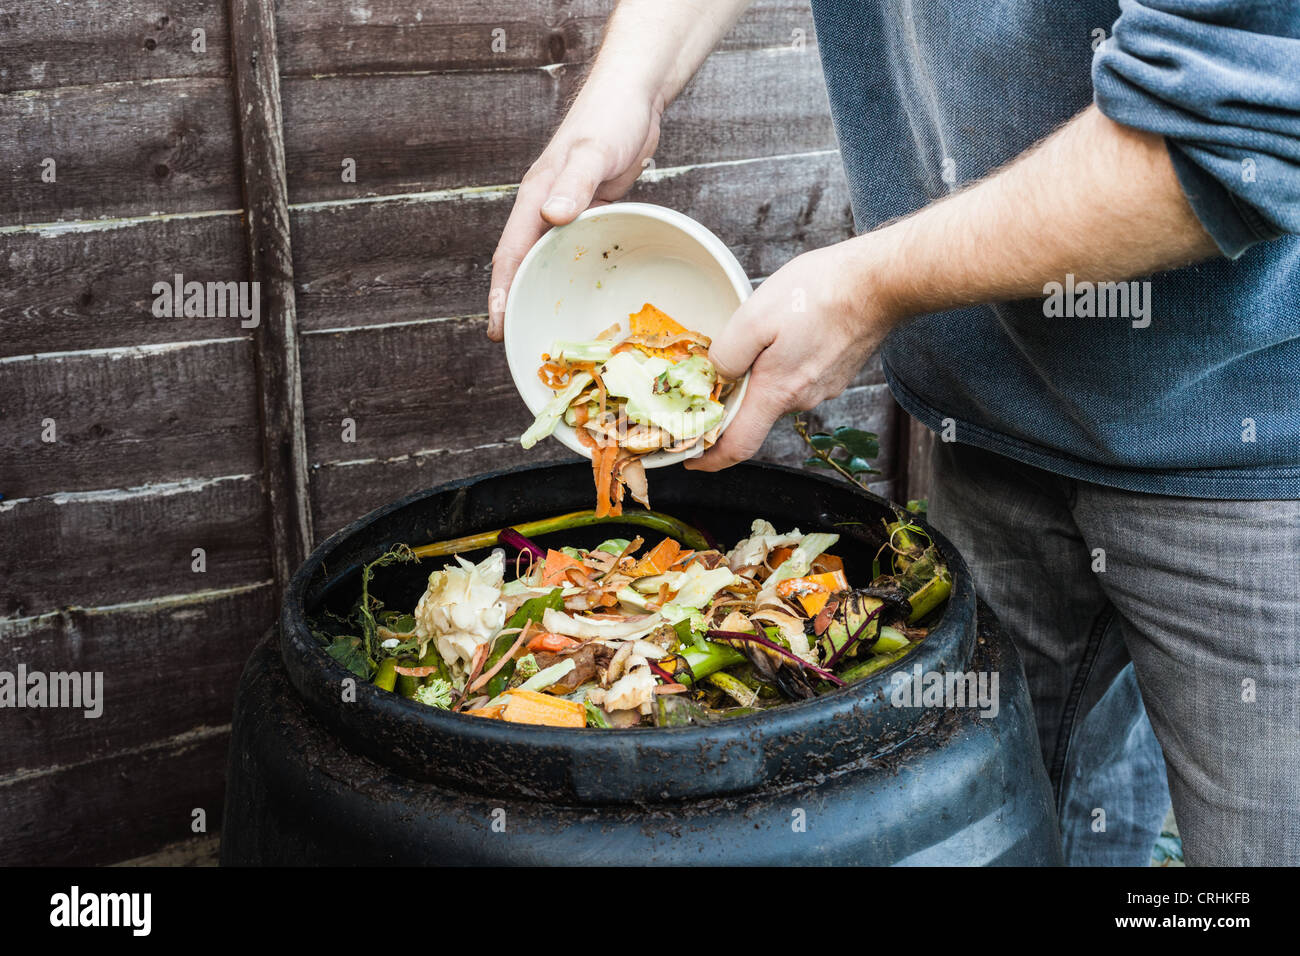 Man adding to compost bin outdoors - Stock Image